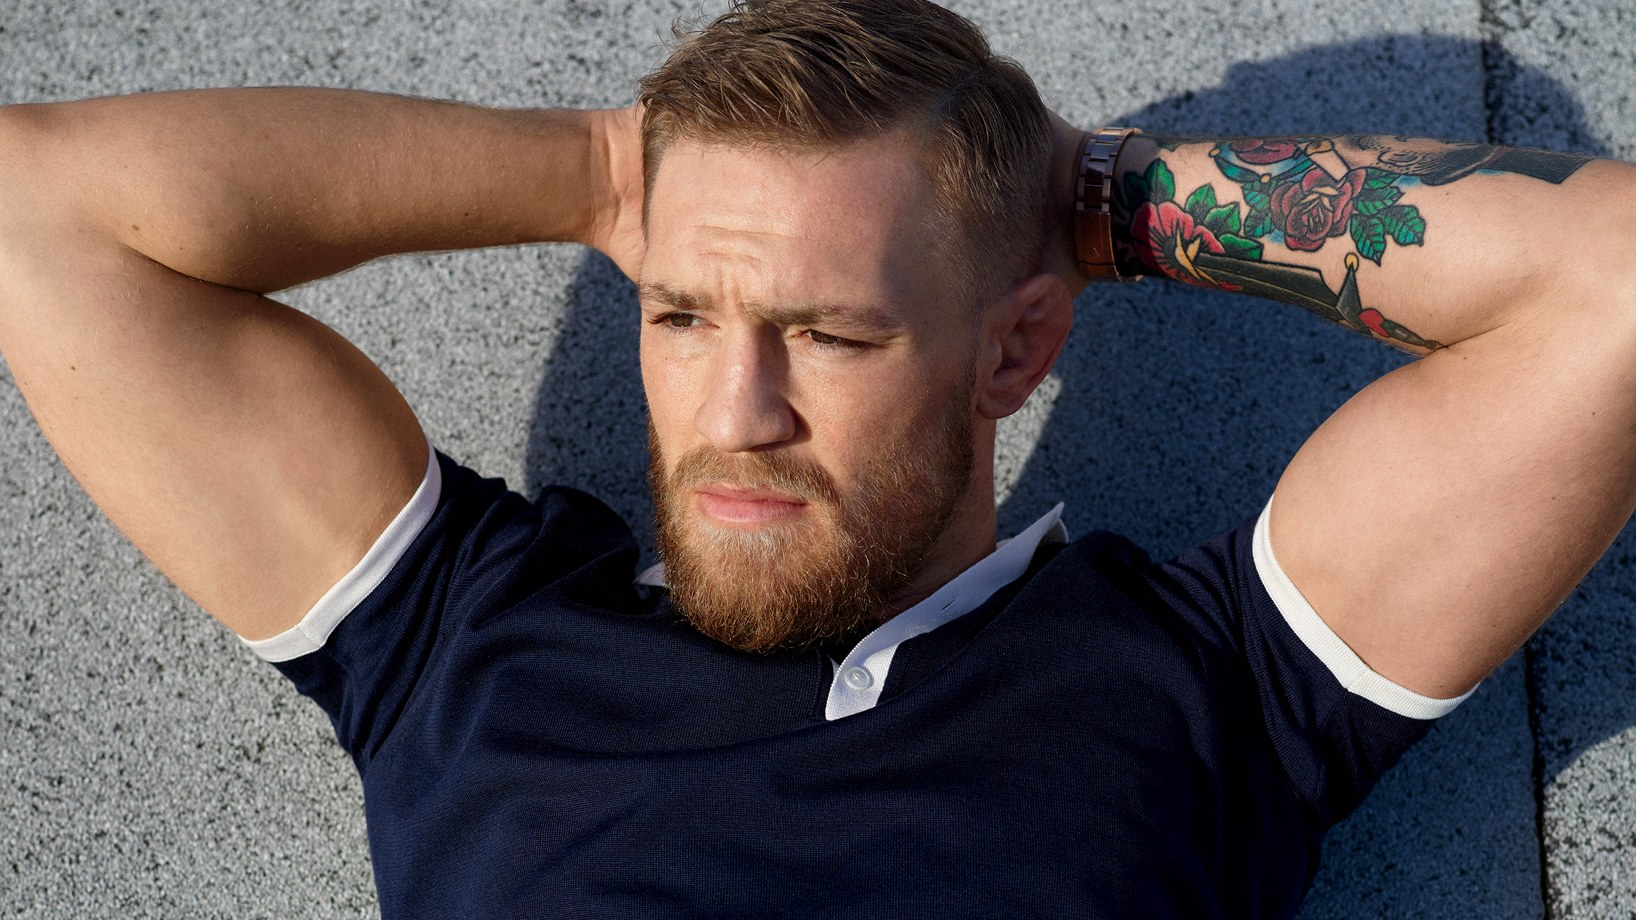 Conor McGregor praises Cody Garbrandt for his loyalty and fighting clean of PEDs -